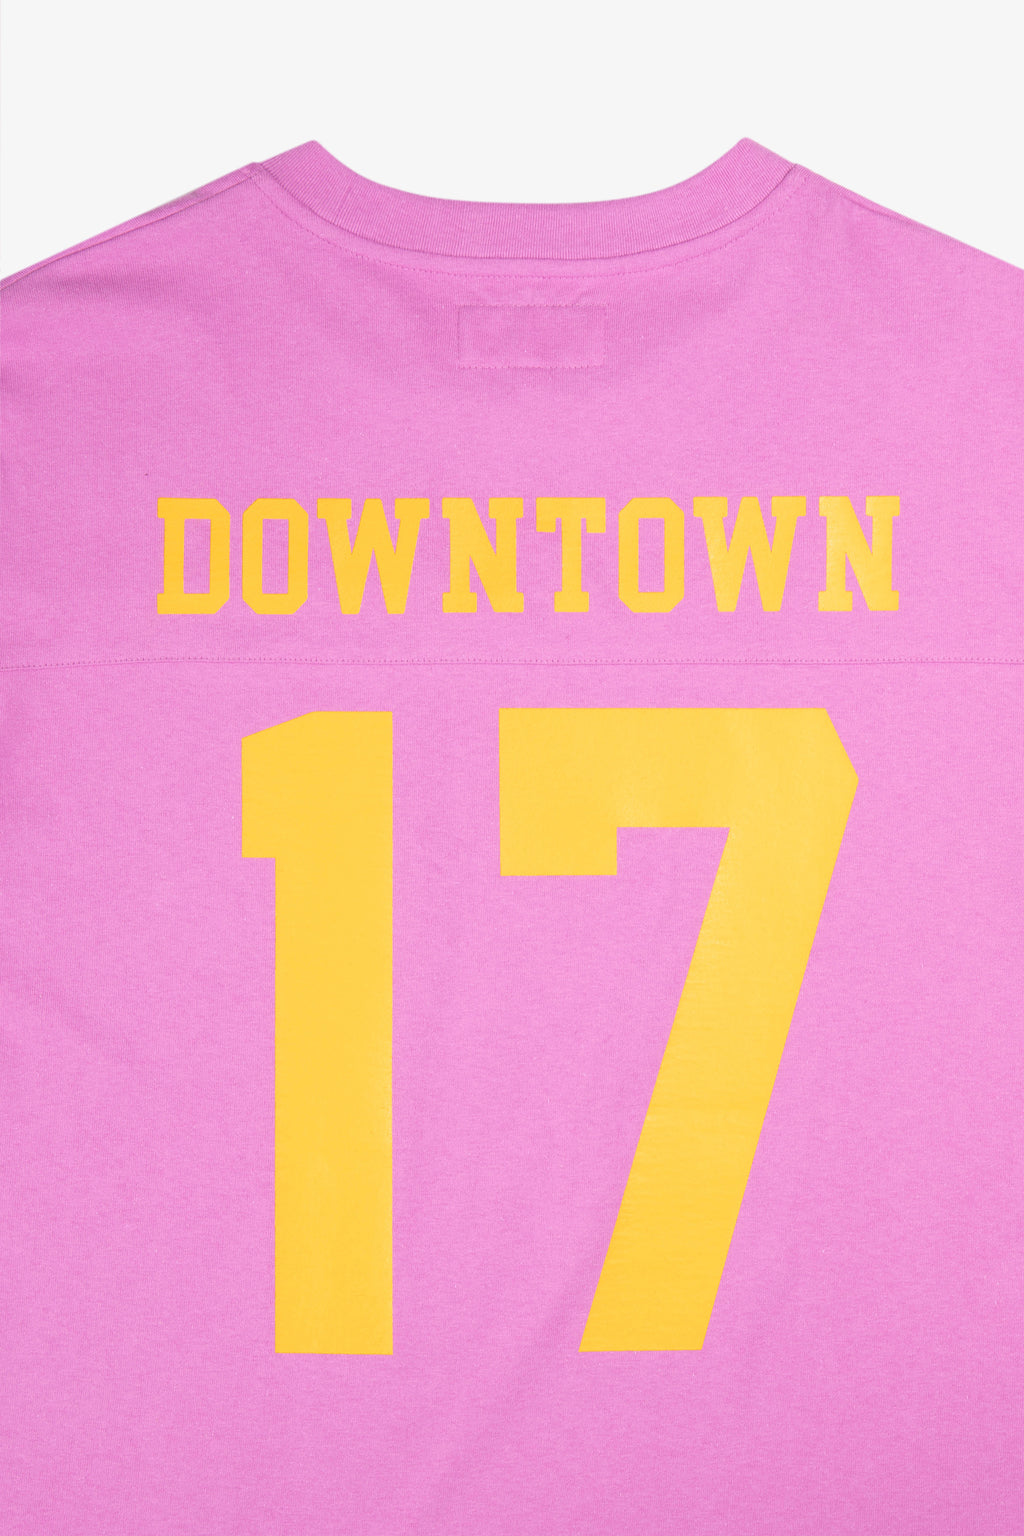 Football Jersey Dusty Pink | CHECKS DOWNTOWN